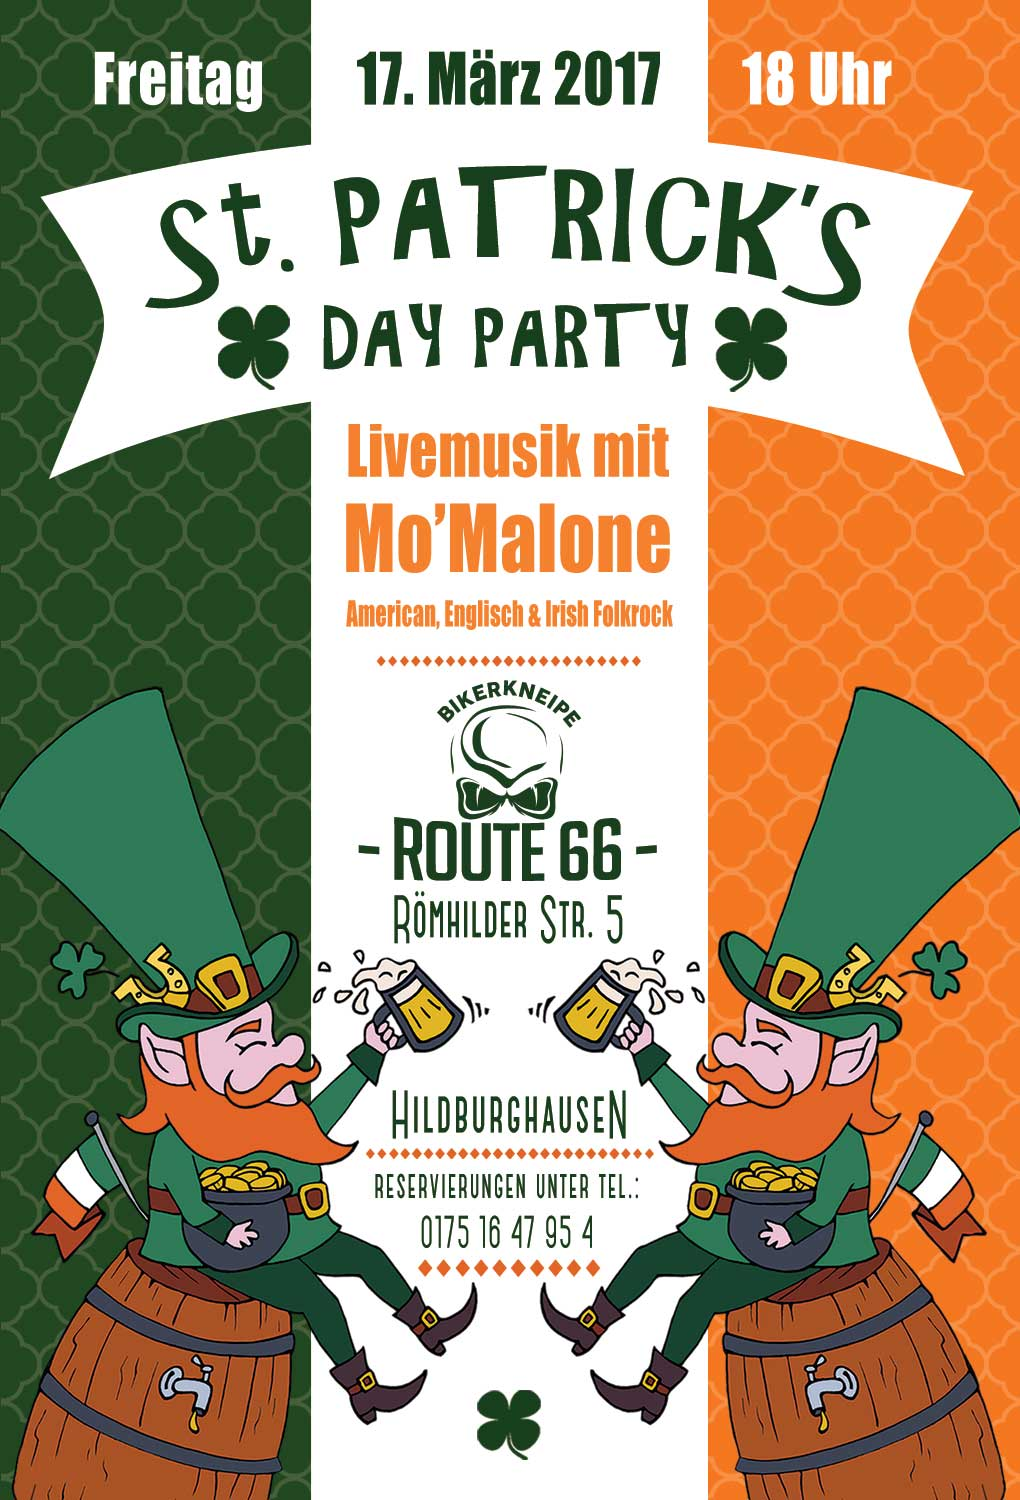 St. Patrick's Day Party im Route 66